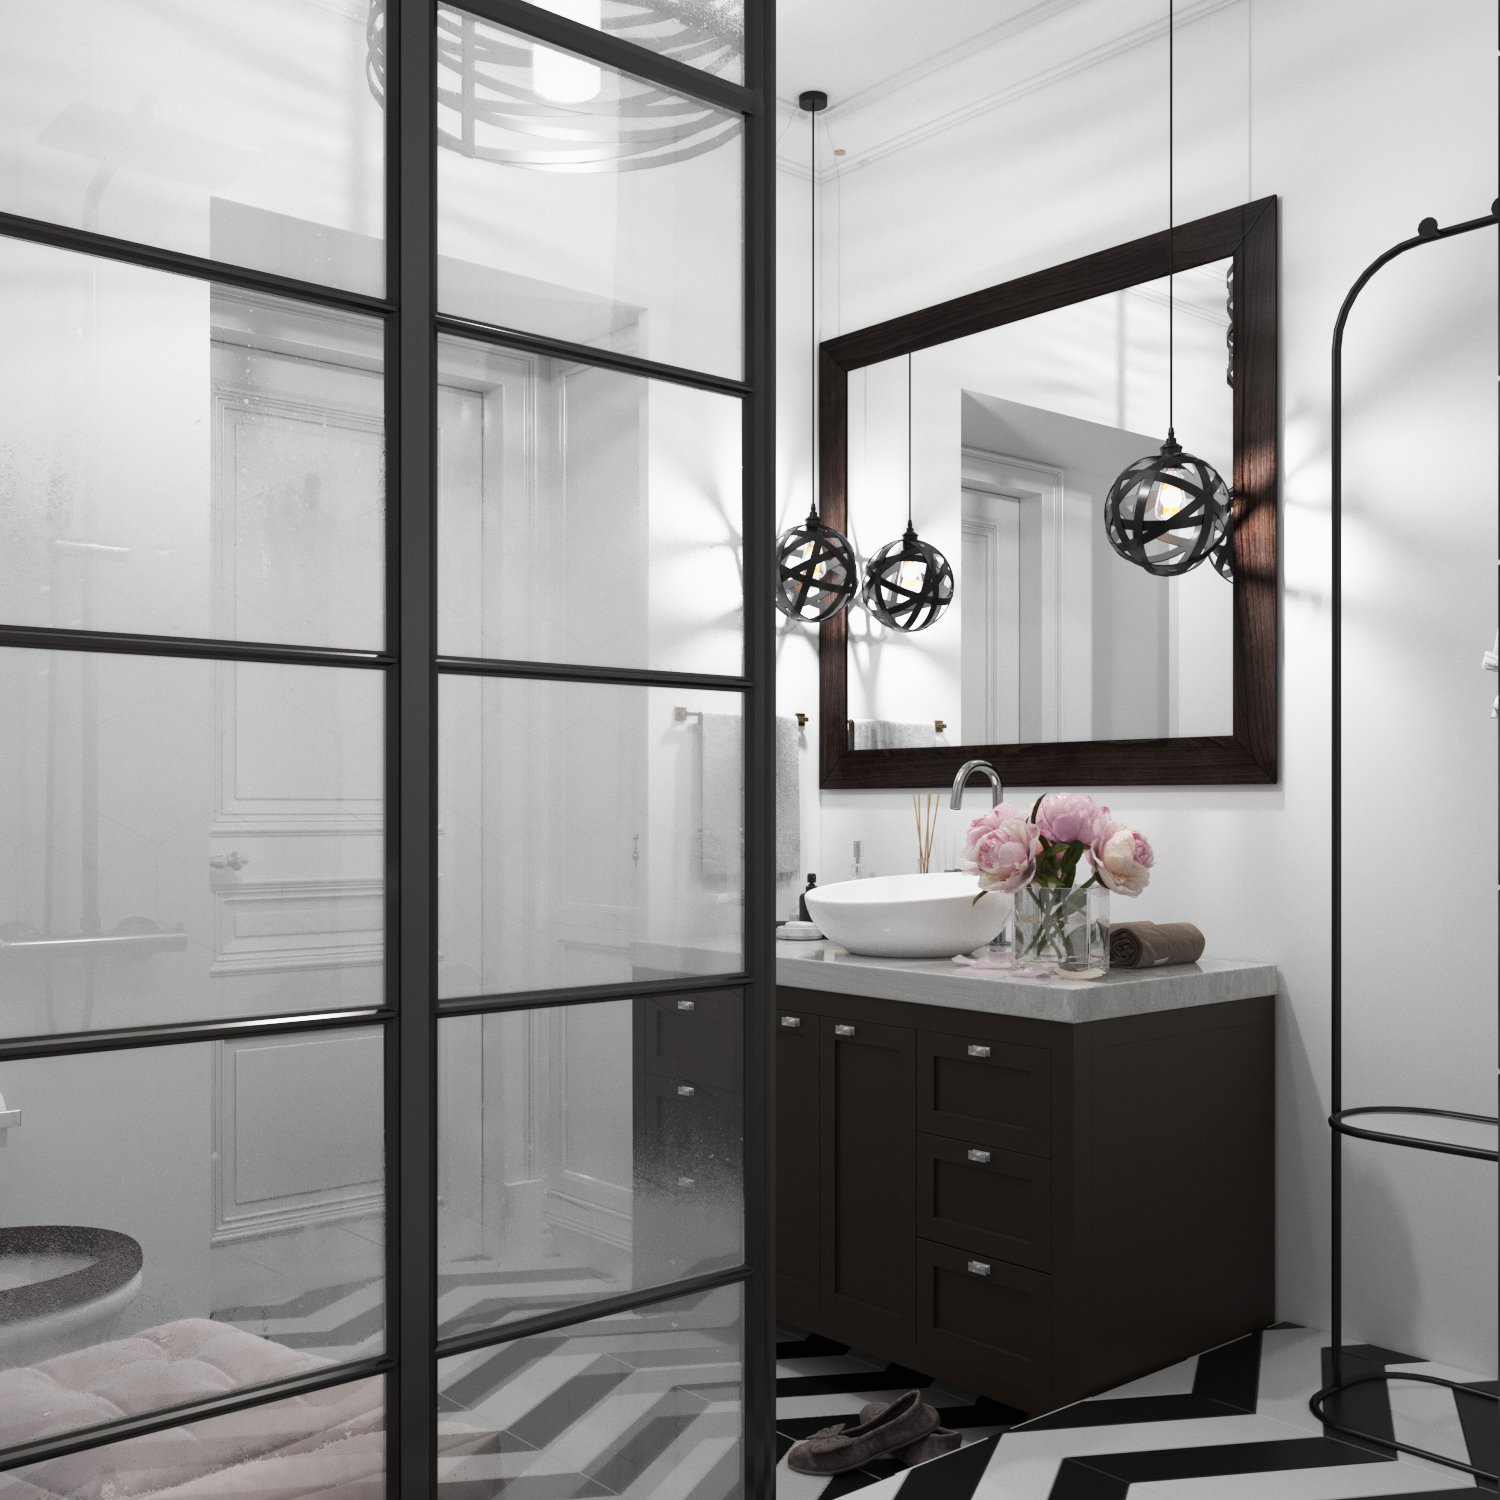 Shower room in a modern style photo